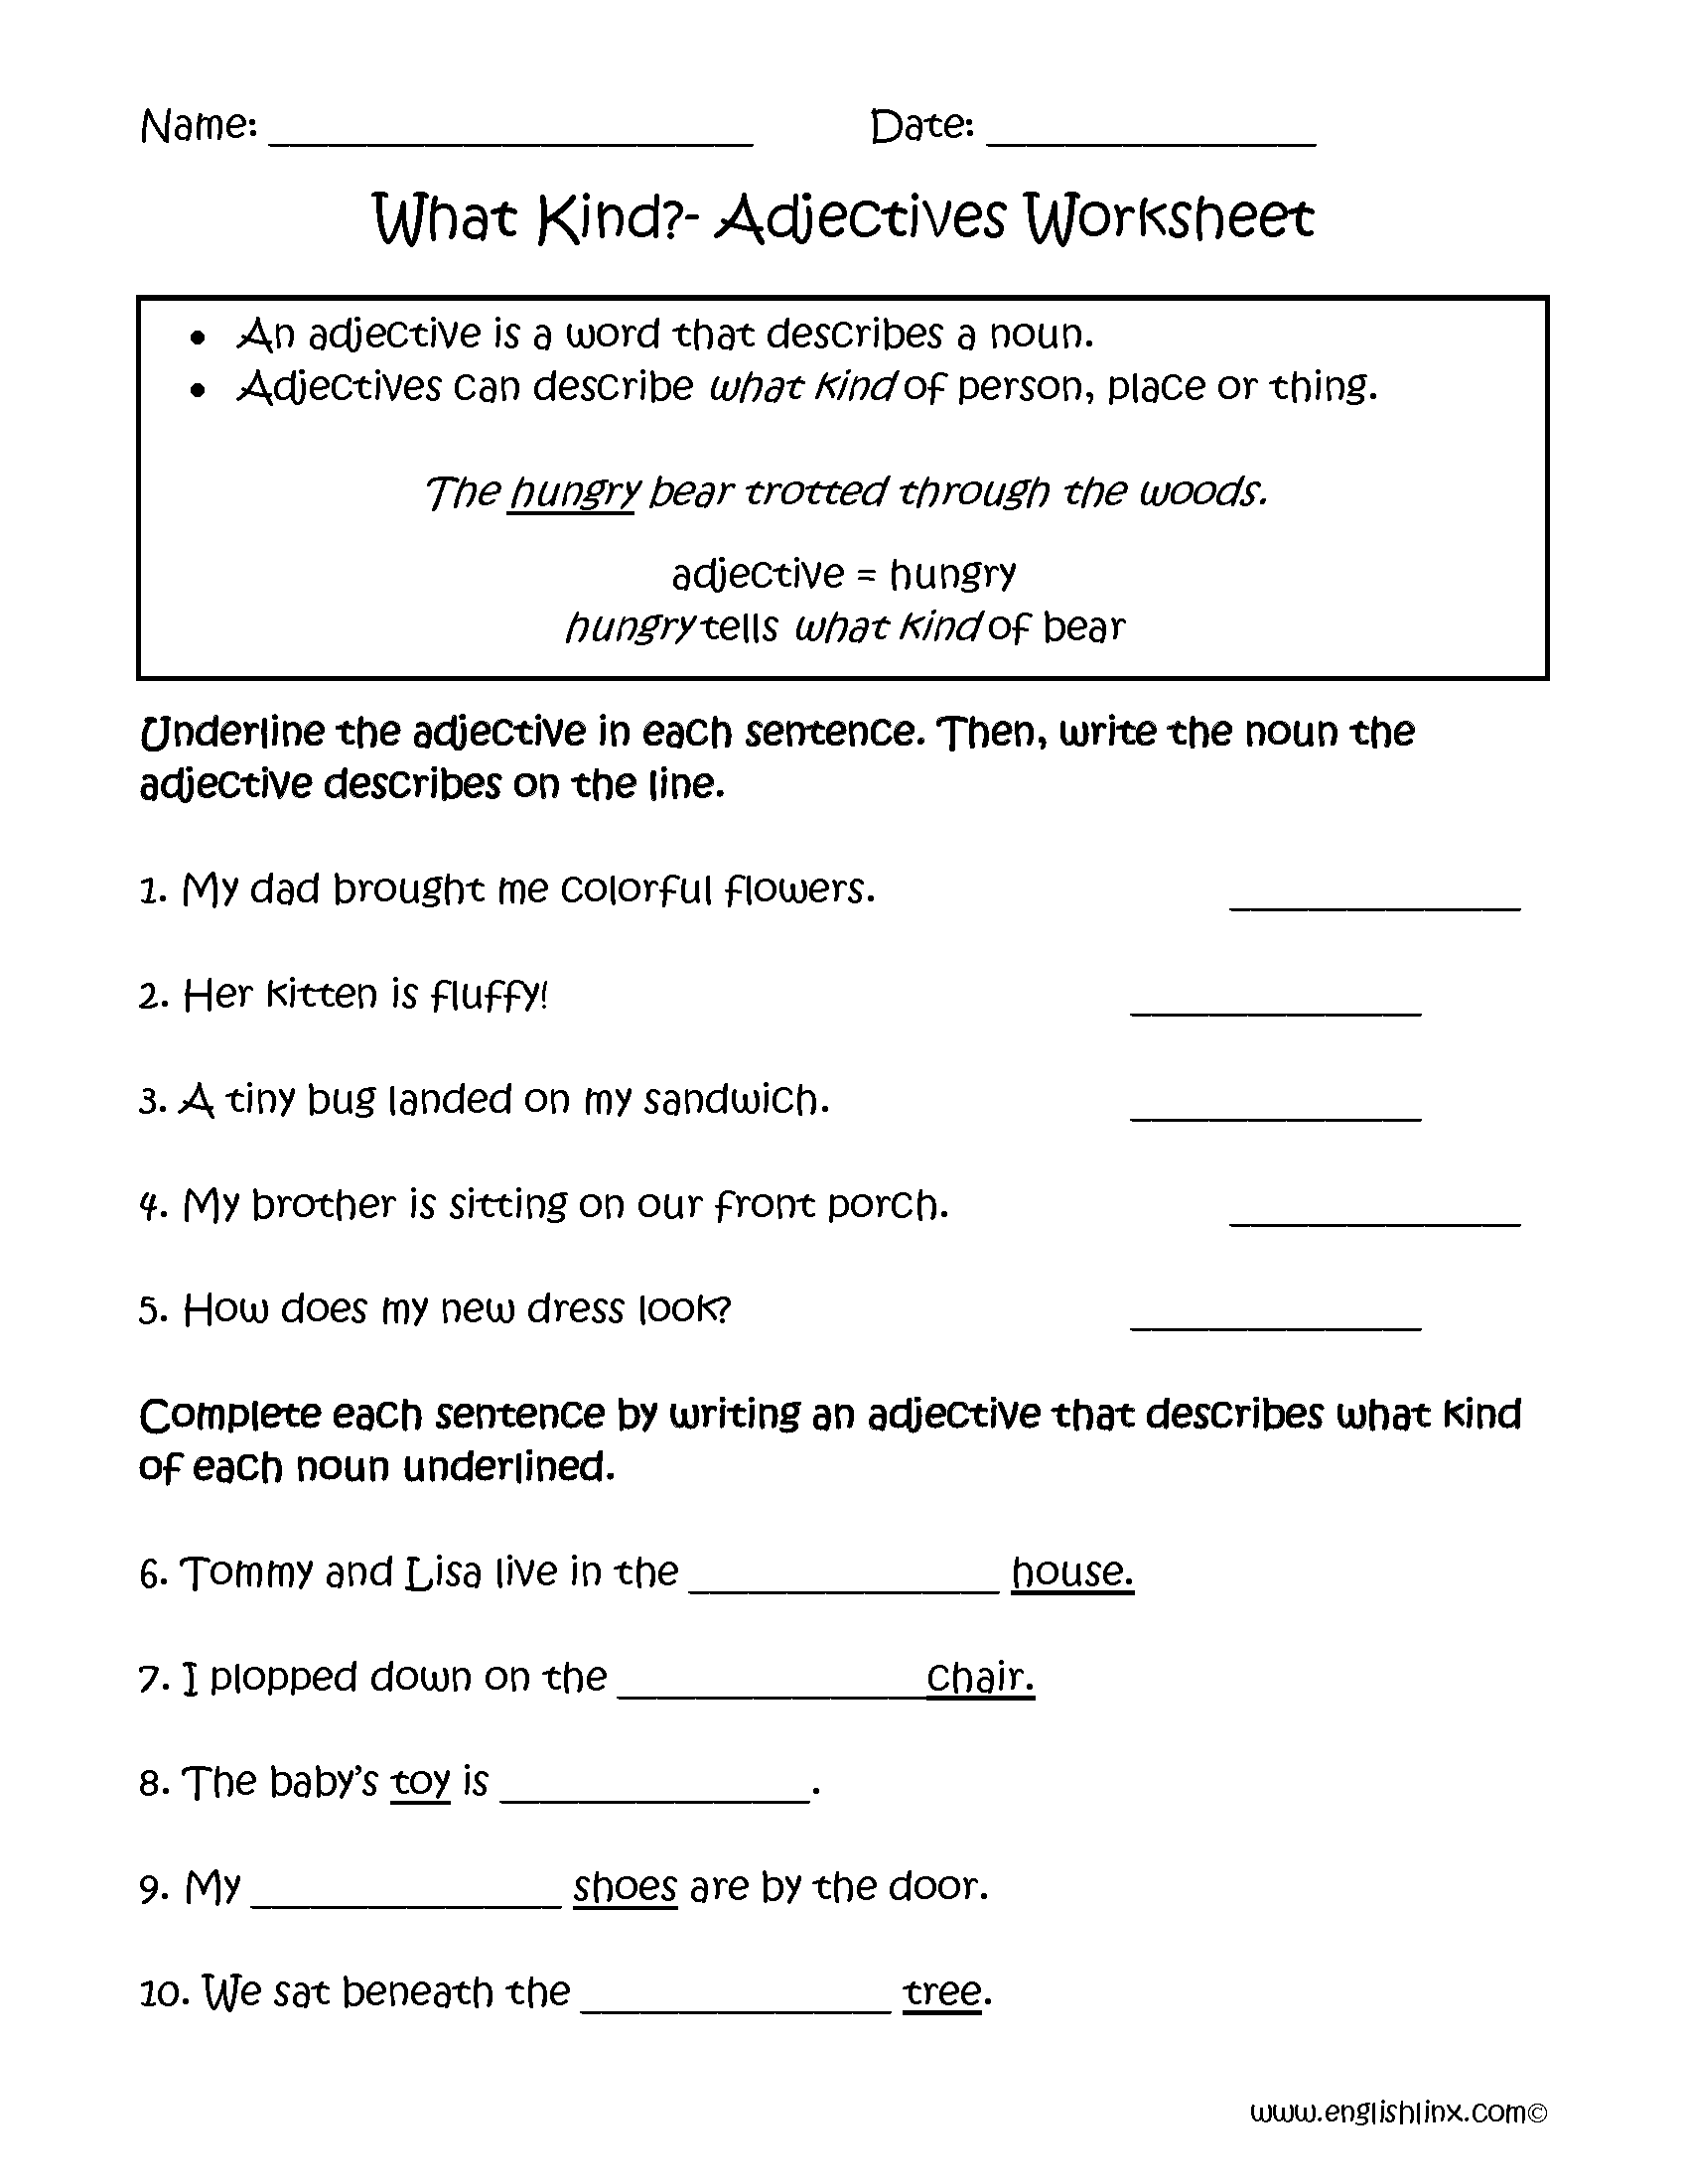 FREE collective noun worksheet – Collective Nouns Worksheet